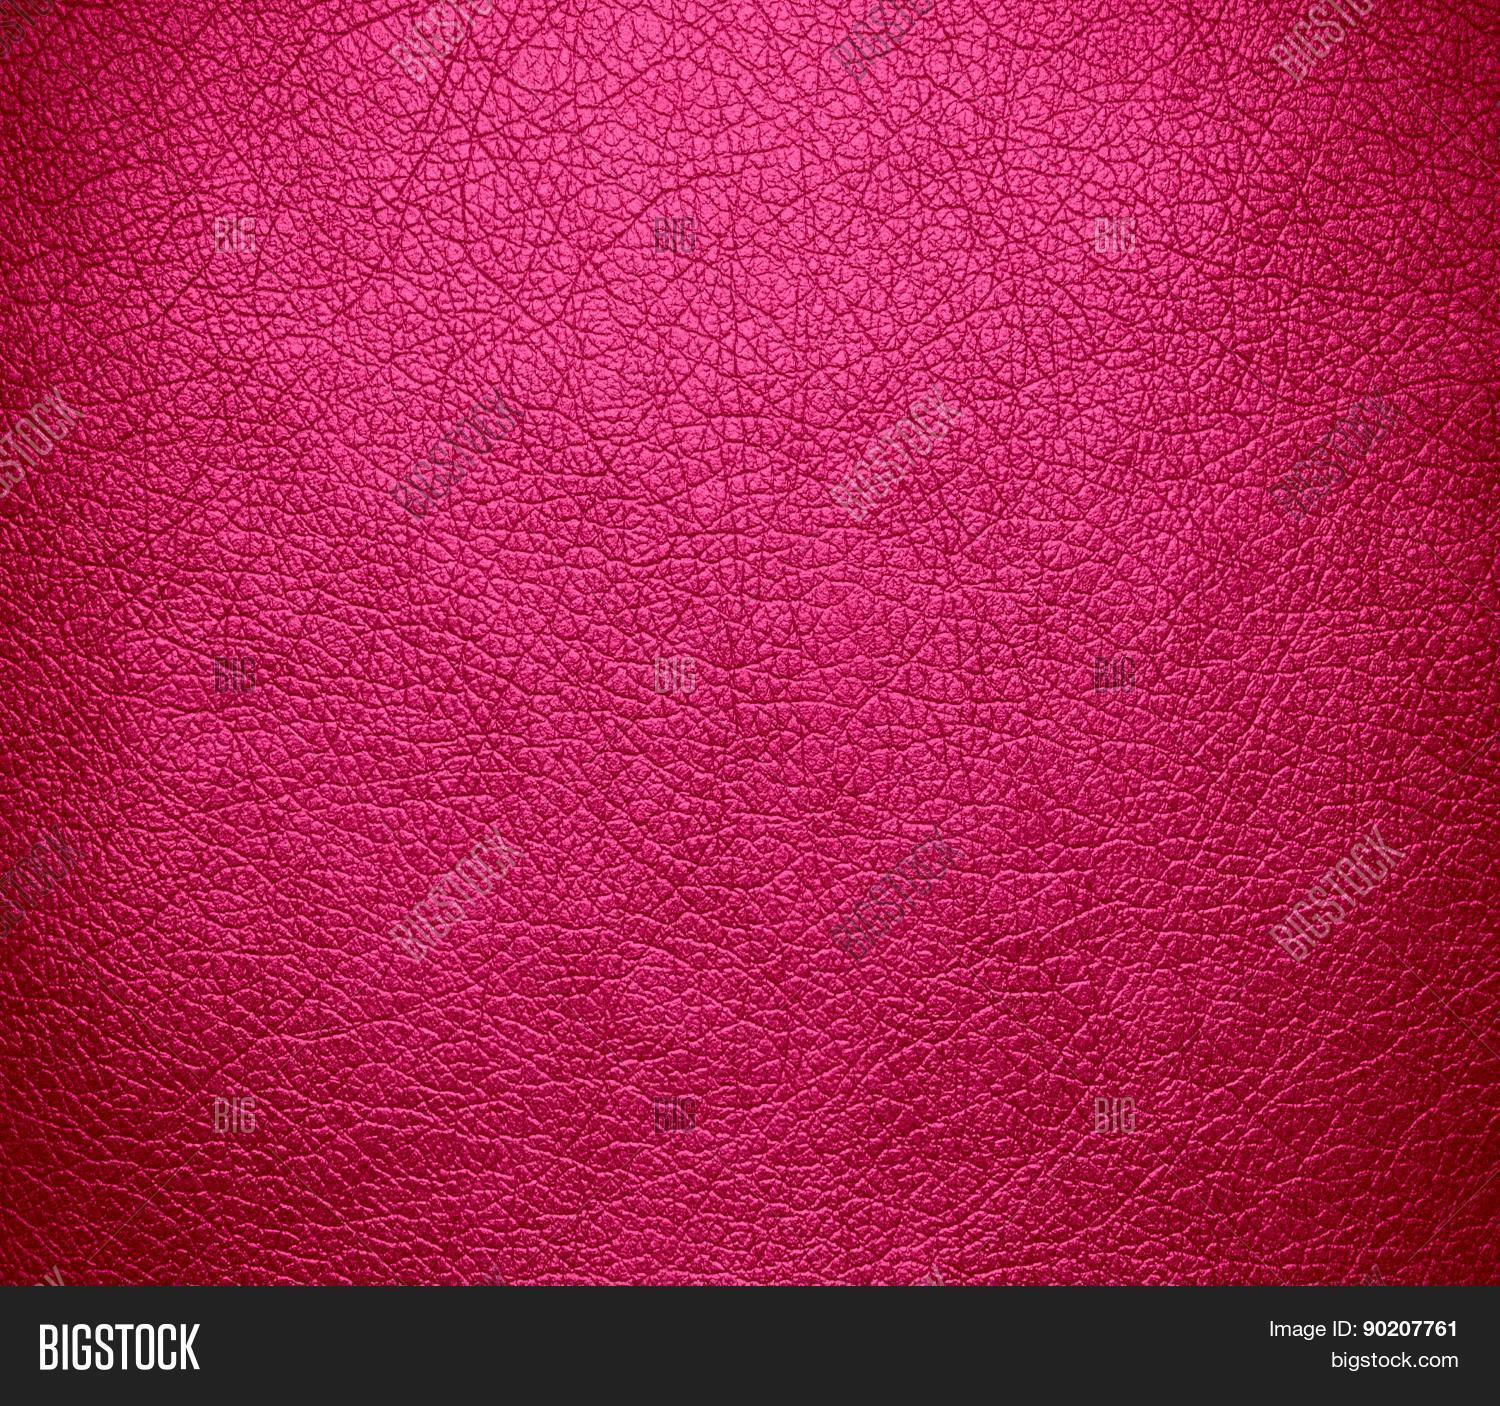 Cerise Pink Color Leather Texture Background